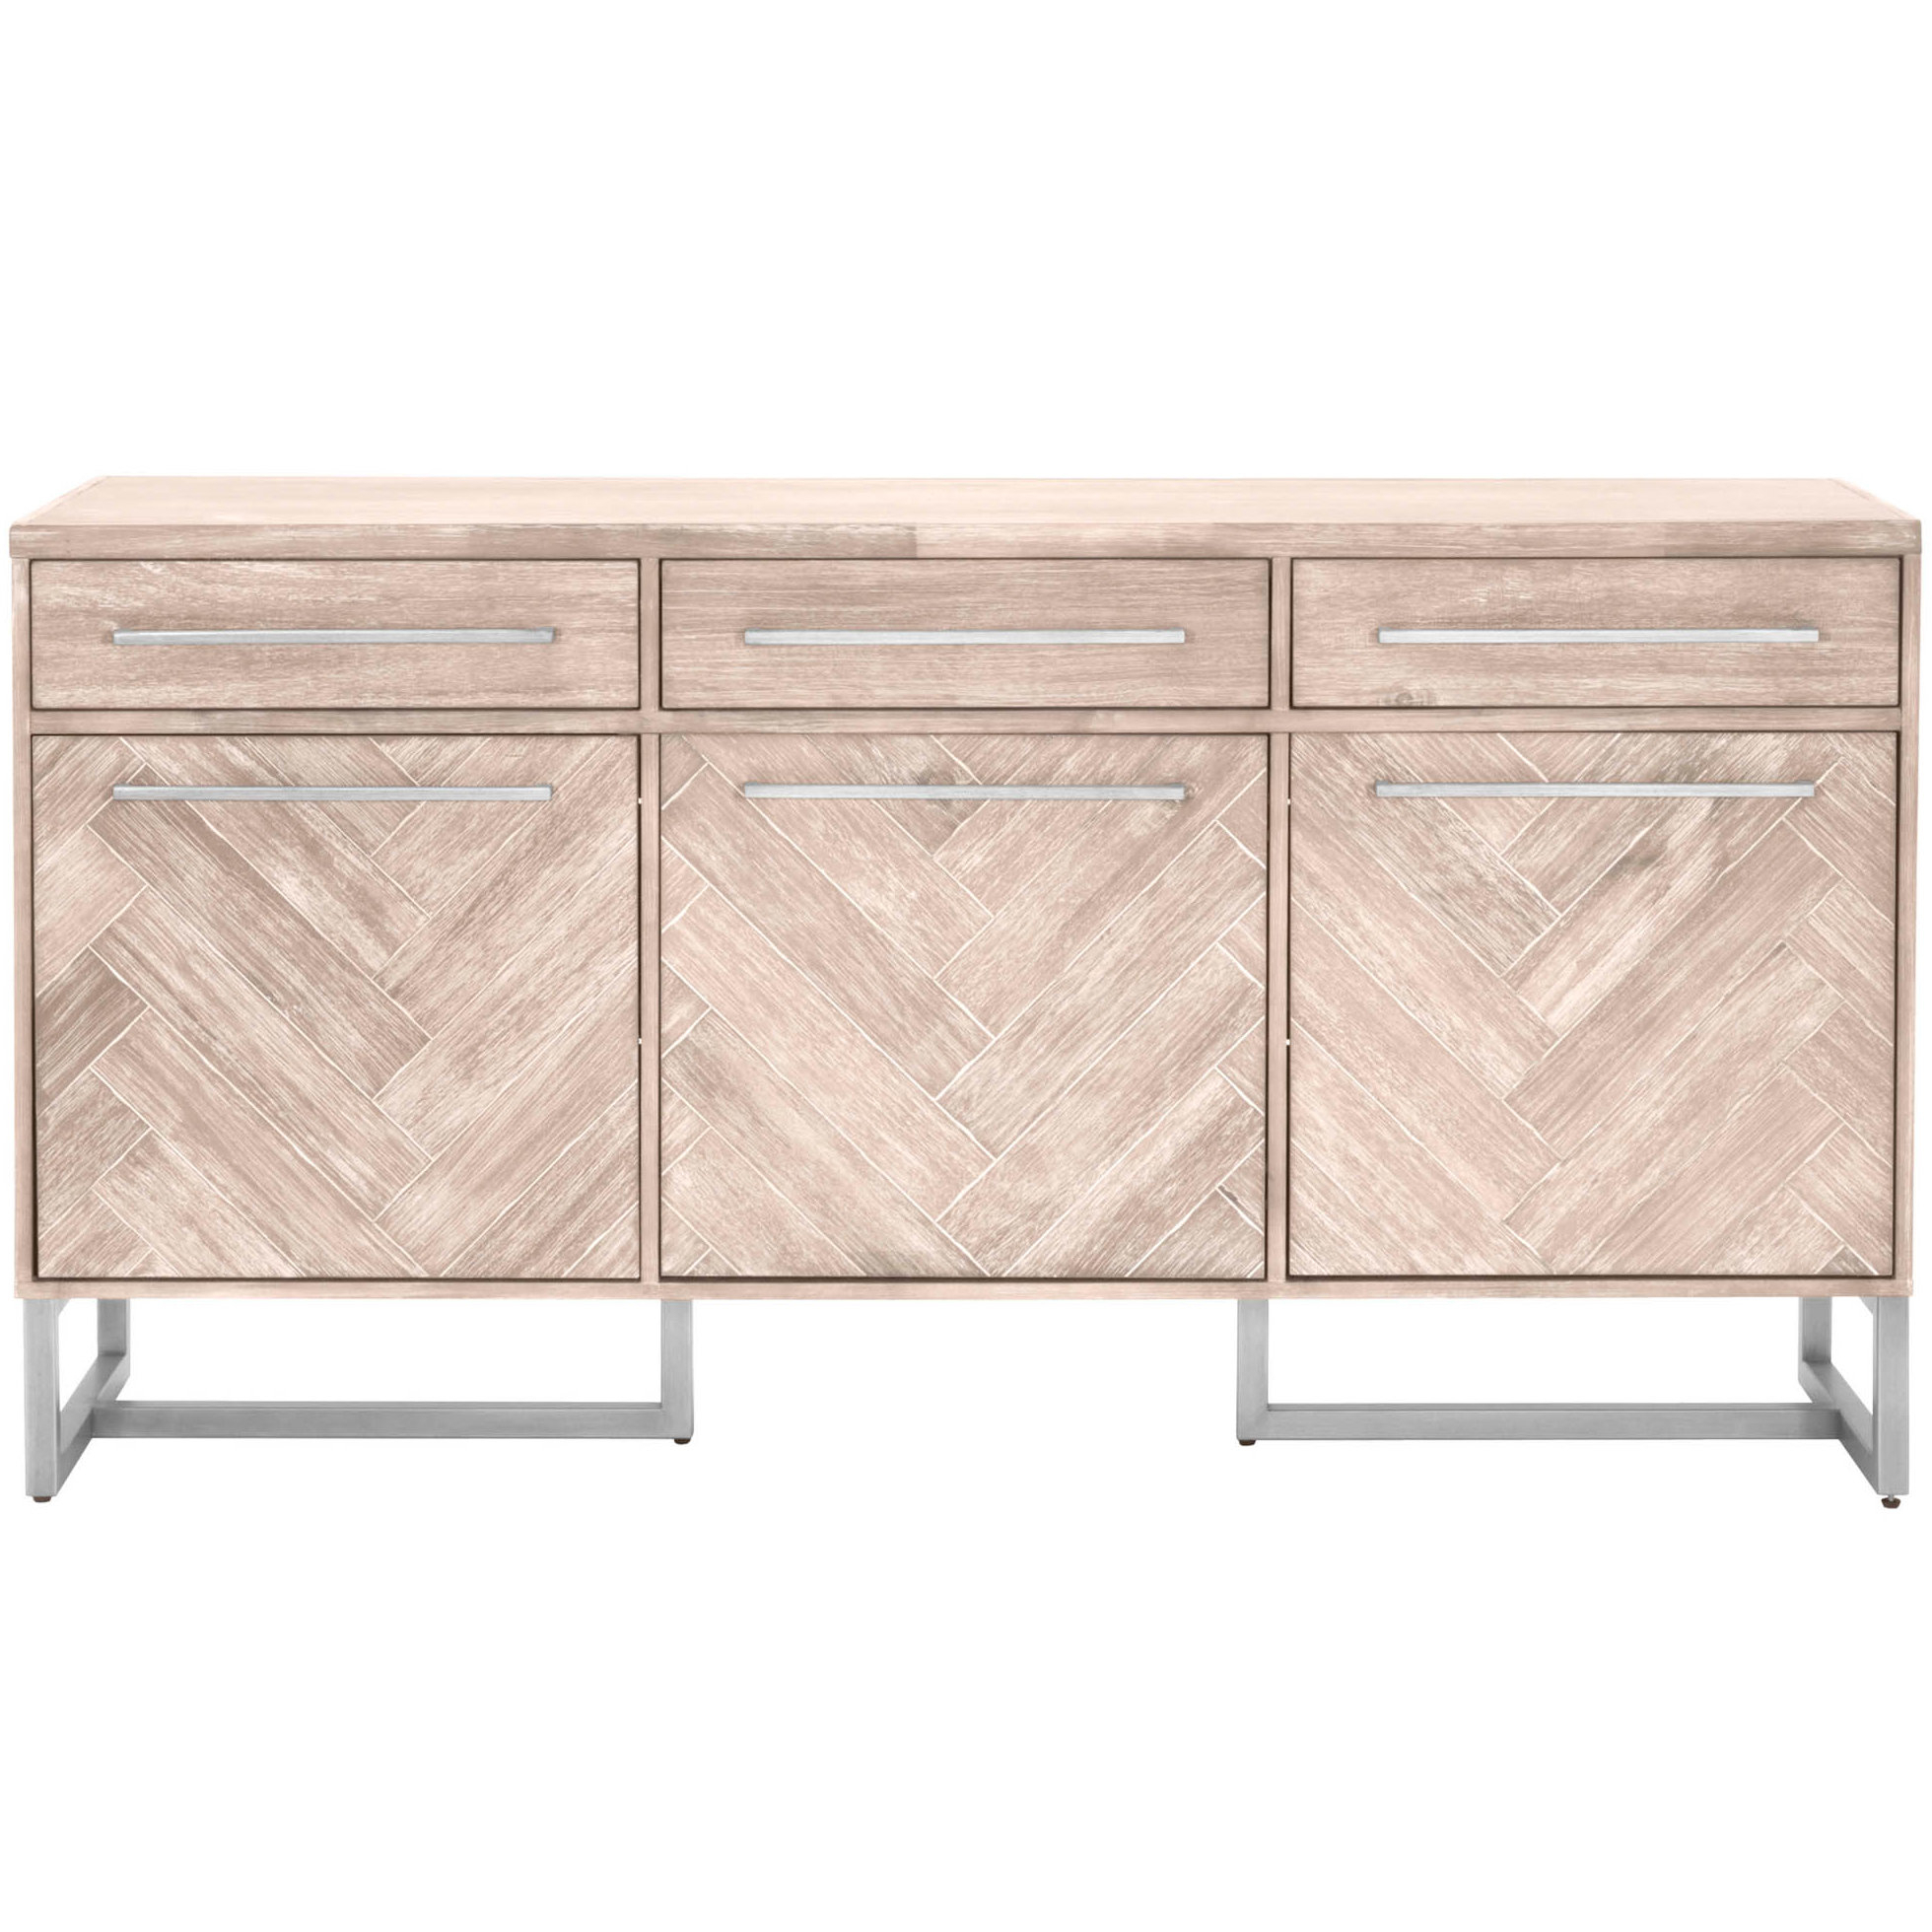 Widely Used Tre Sideboard Inside Dillen Sideboards (Gallery 14 of 20)